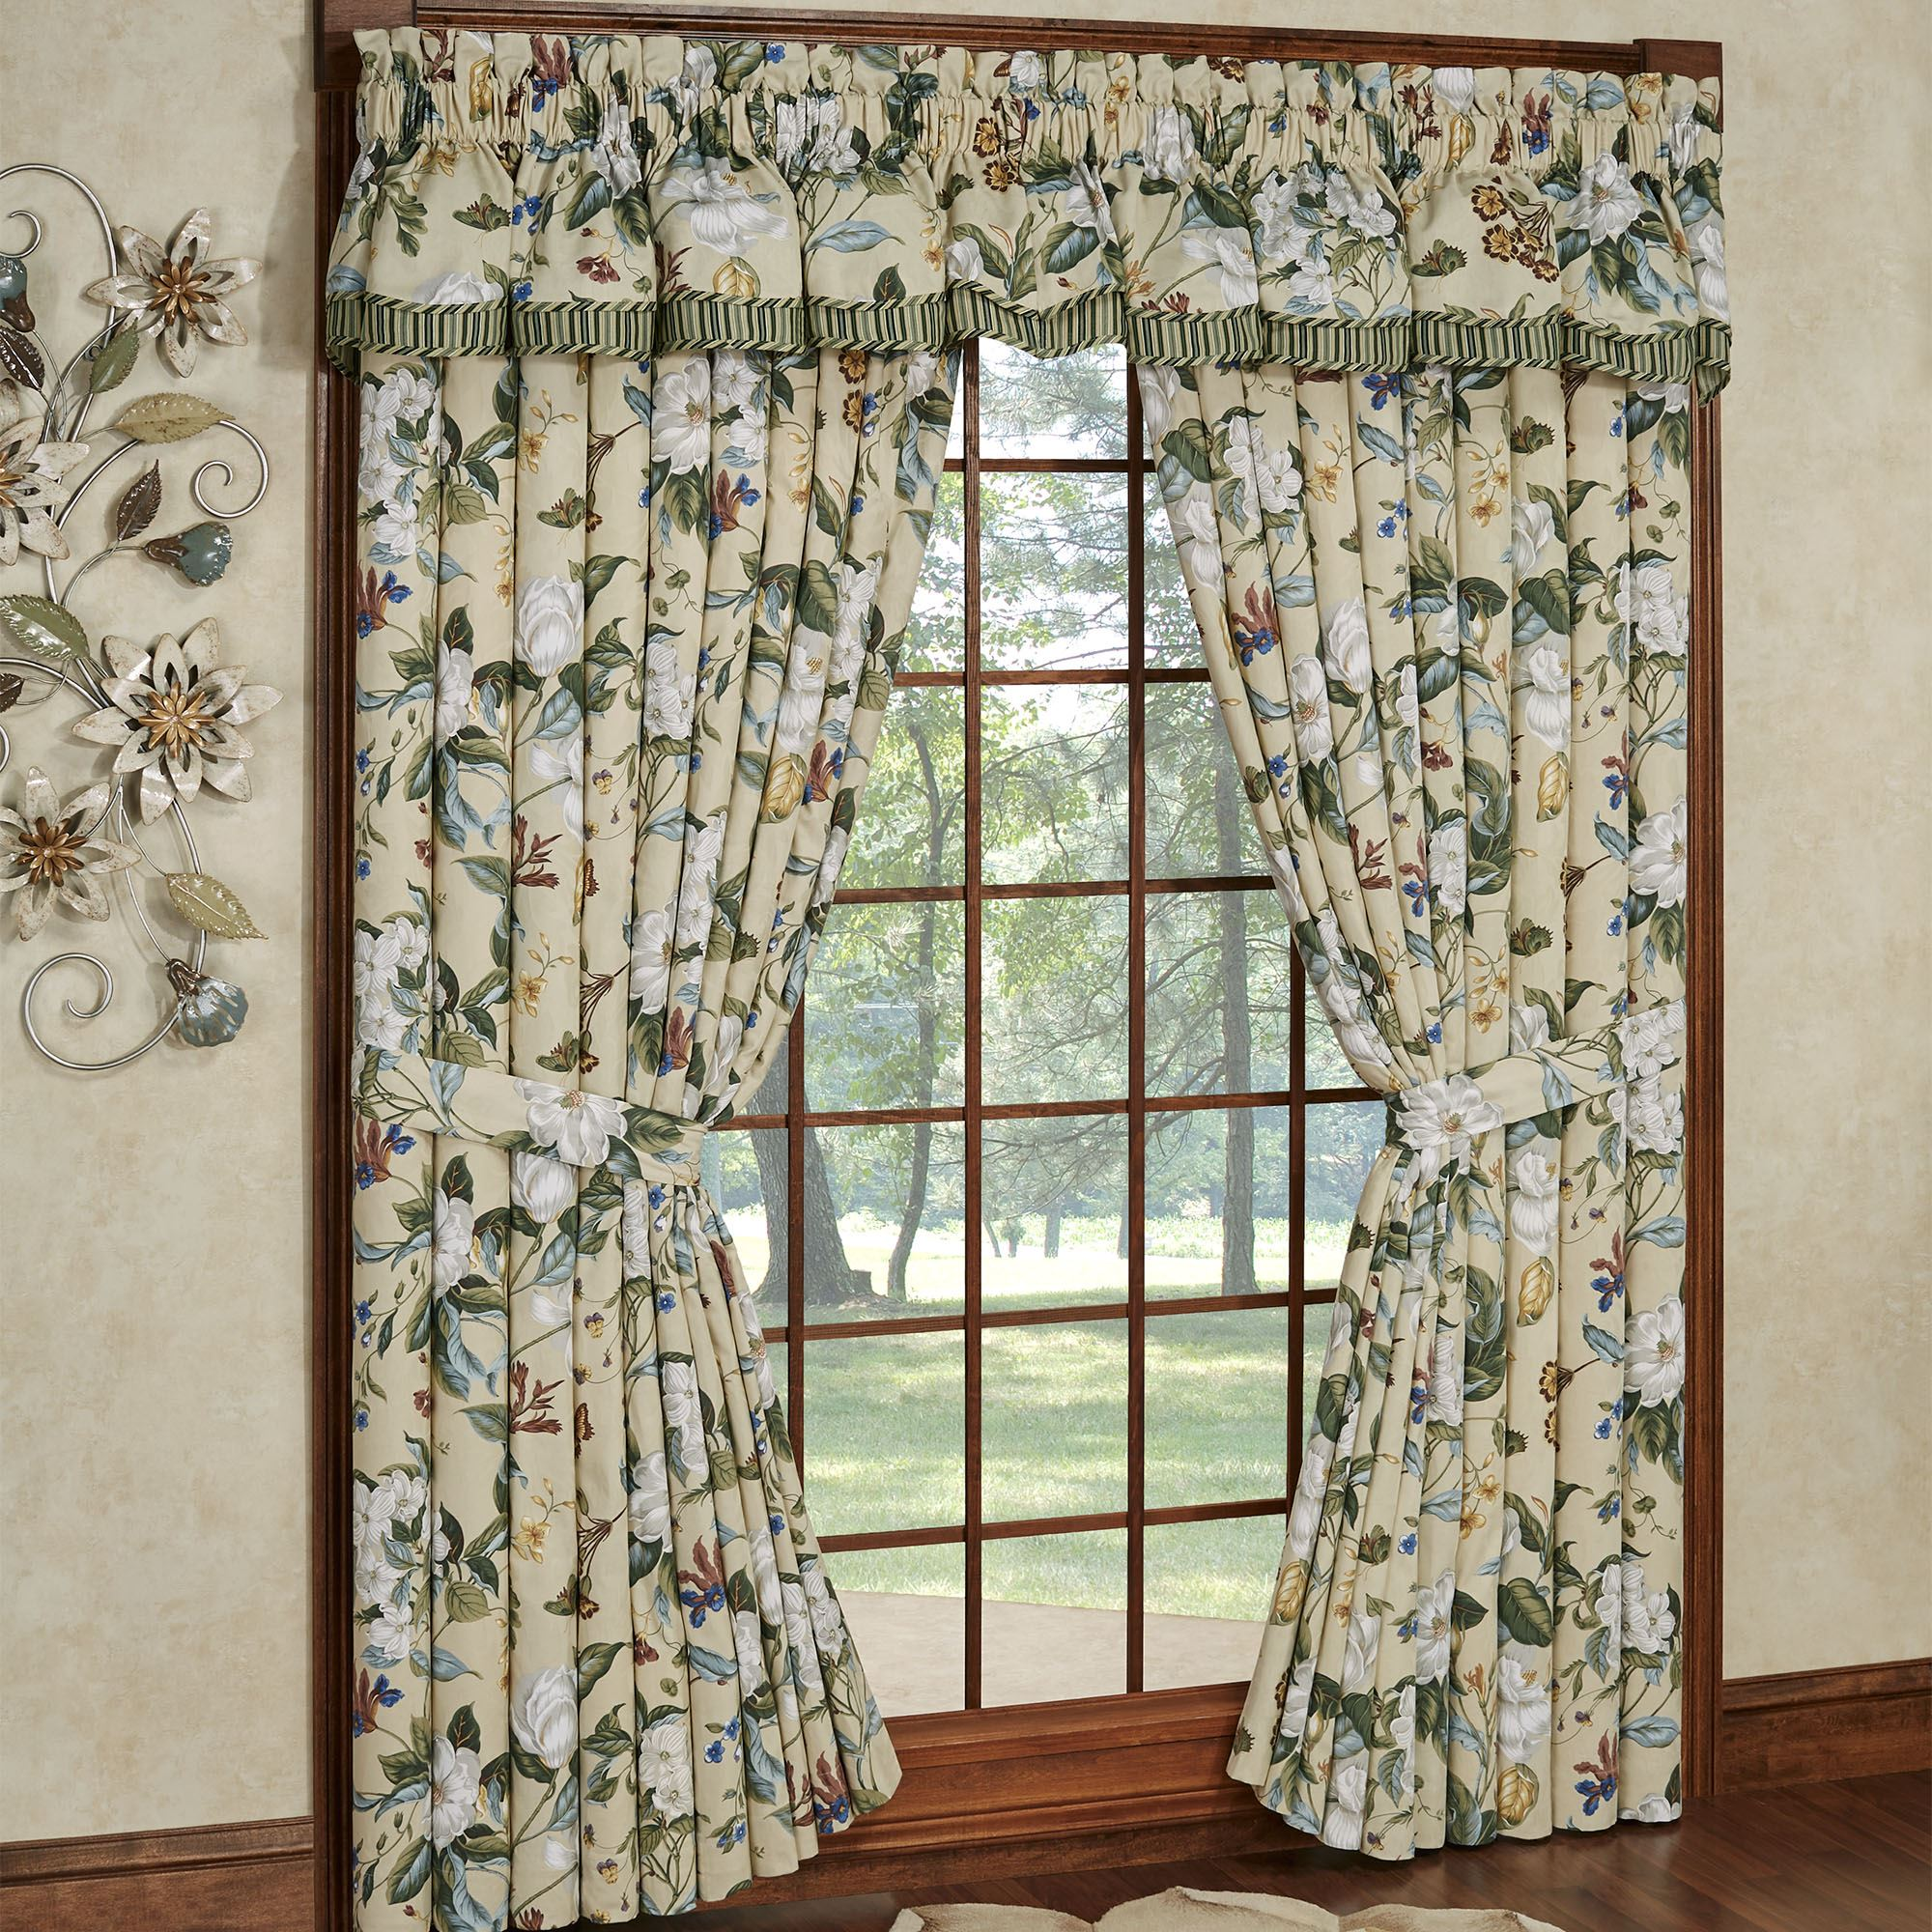 a style treatments jacobean floral window drapery drapes curtain for image teal and navy full curtains white blue shower